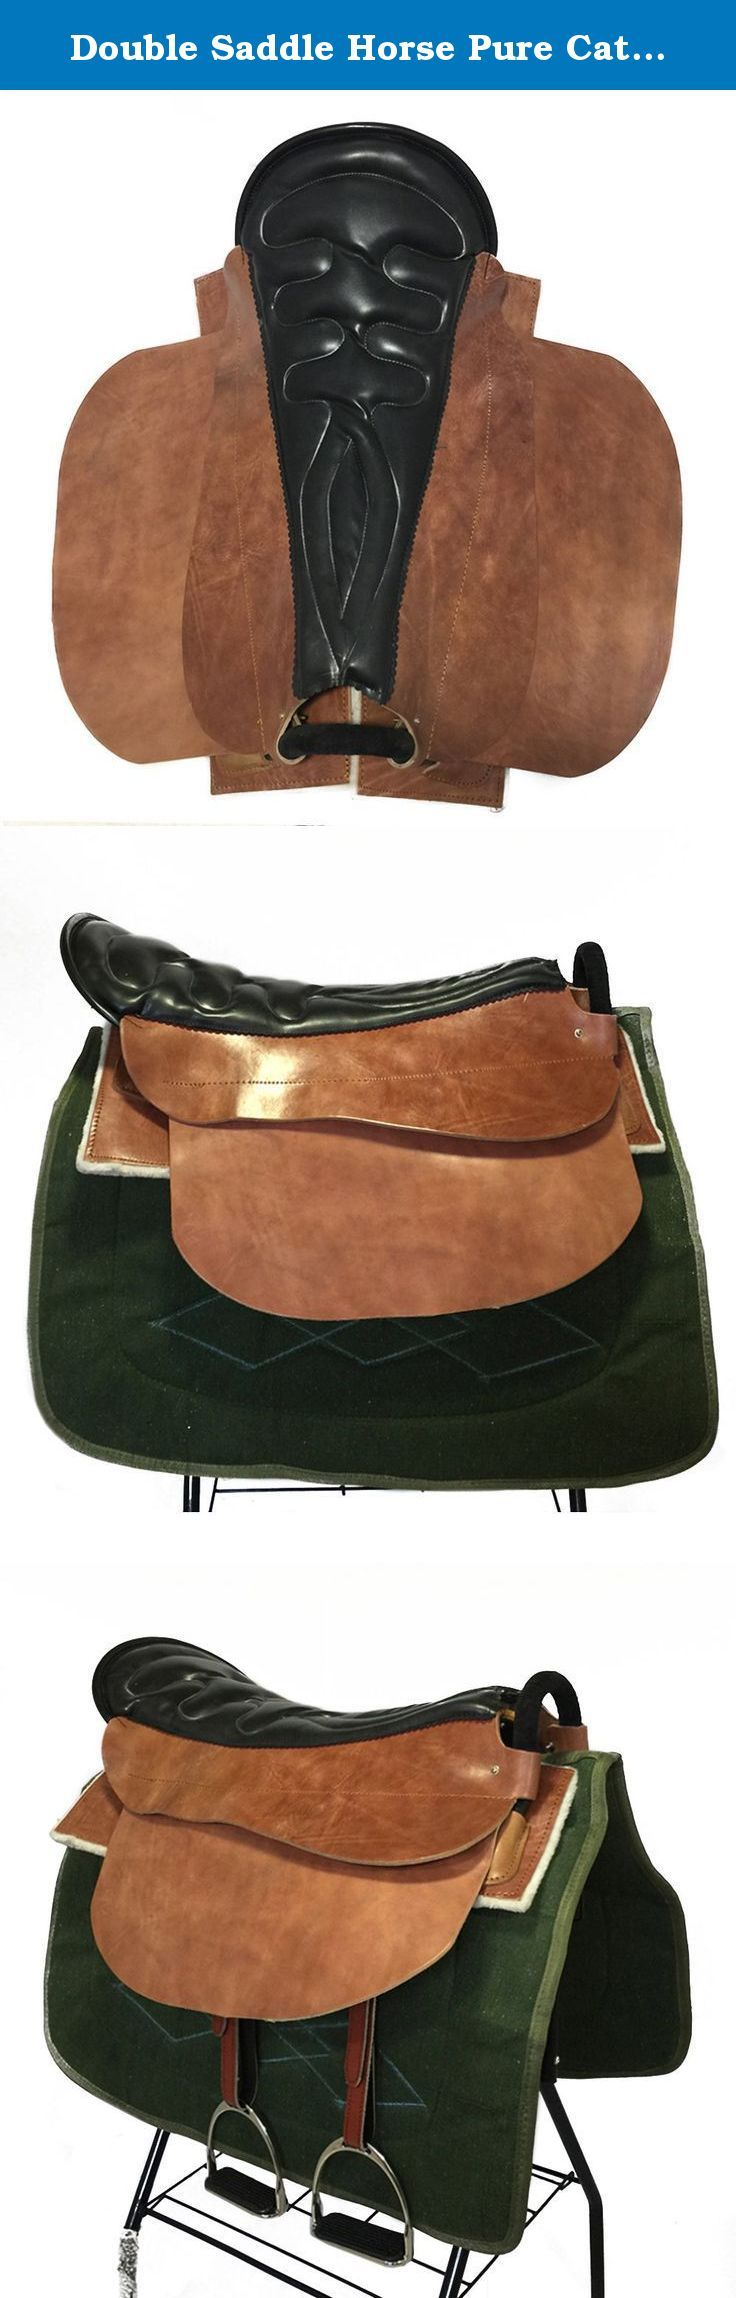 Double Saddle Horse Pure Cattle Leather Equestrian Supplies. Features: High cost performance Manual made of cattle leather Improved from old army saddle Comfortable riding Keep away from wet environment and blazing sun Specifications: Color:yellow brown Material:pure cattle leather,steel frame Size:70cm Suitable to horses of normal stature with over 1.5m shoulder Weight:10kg .